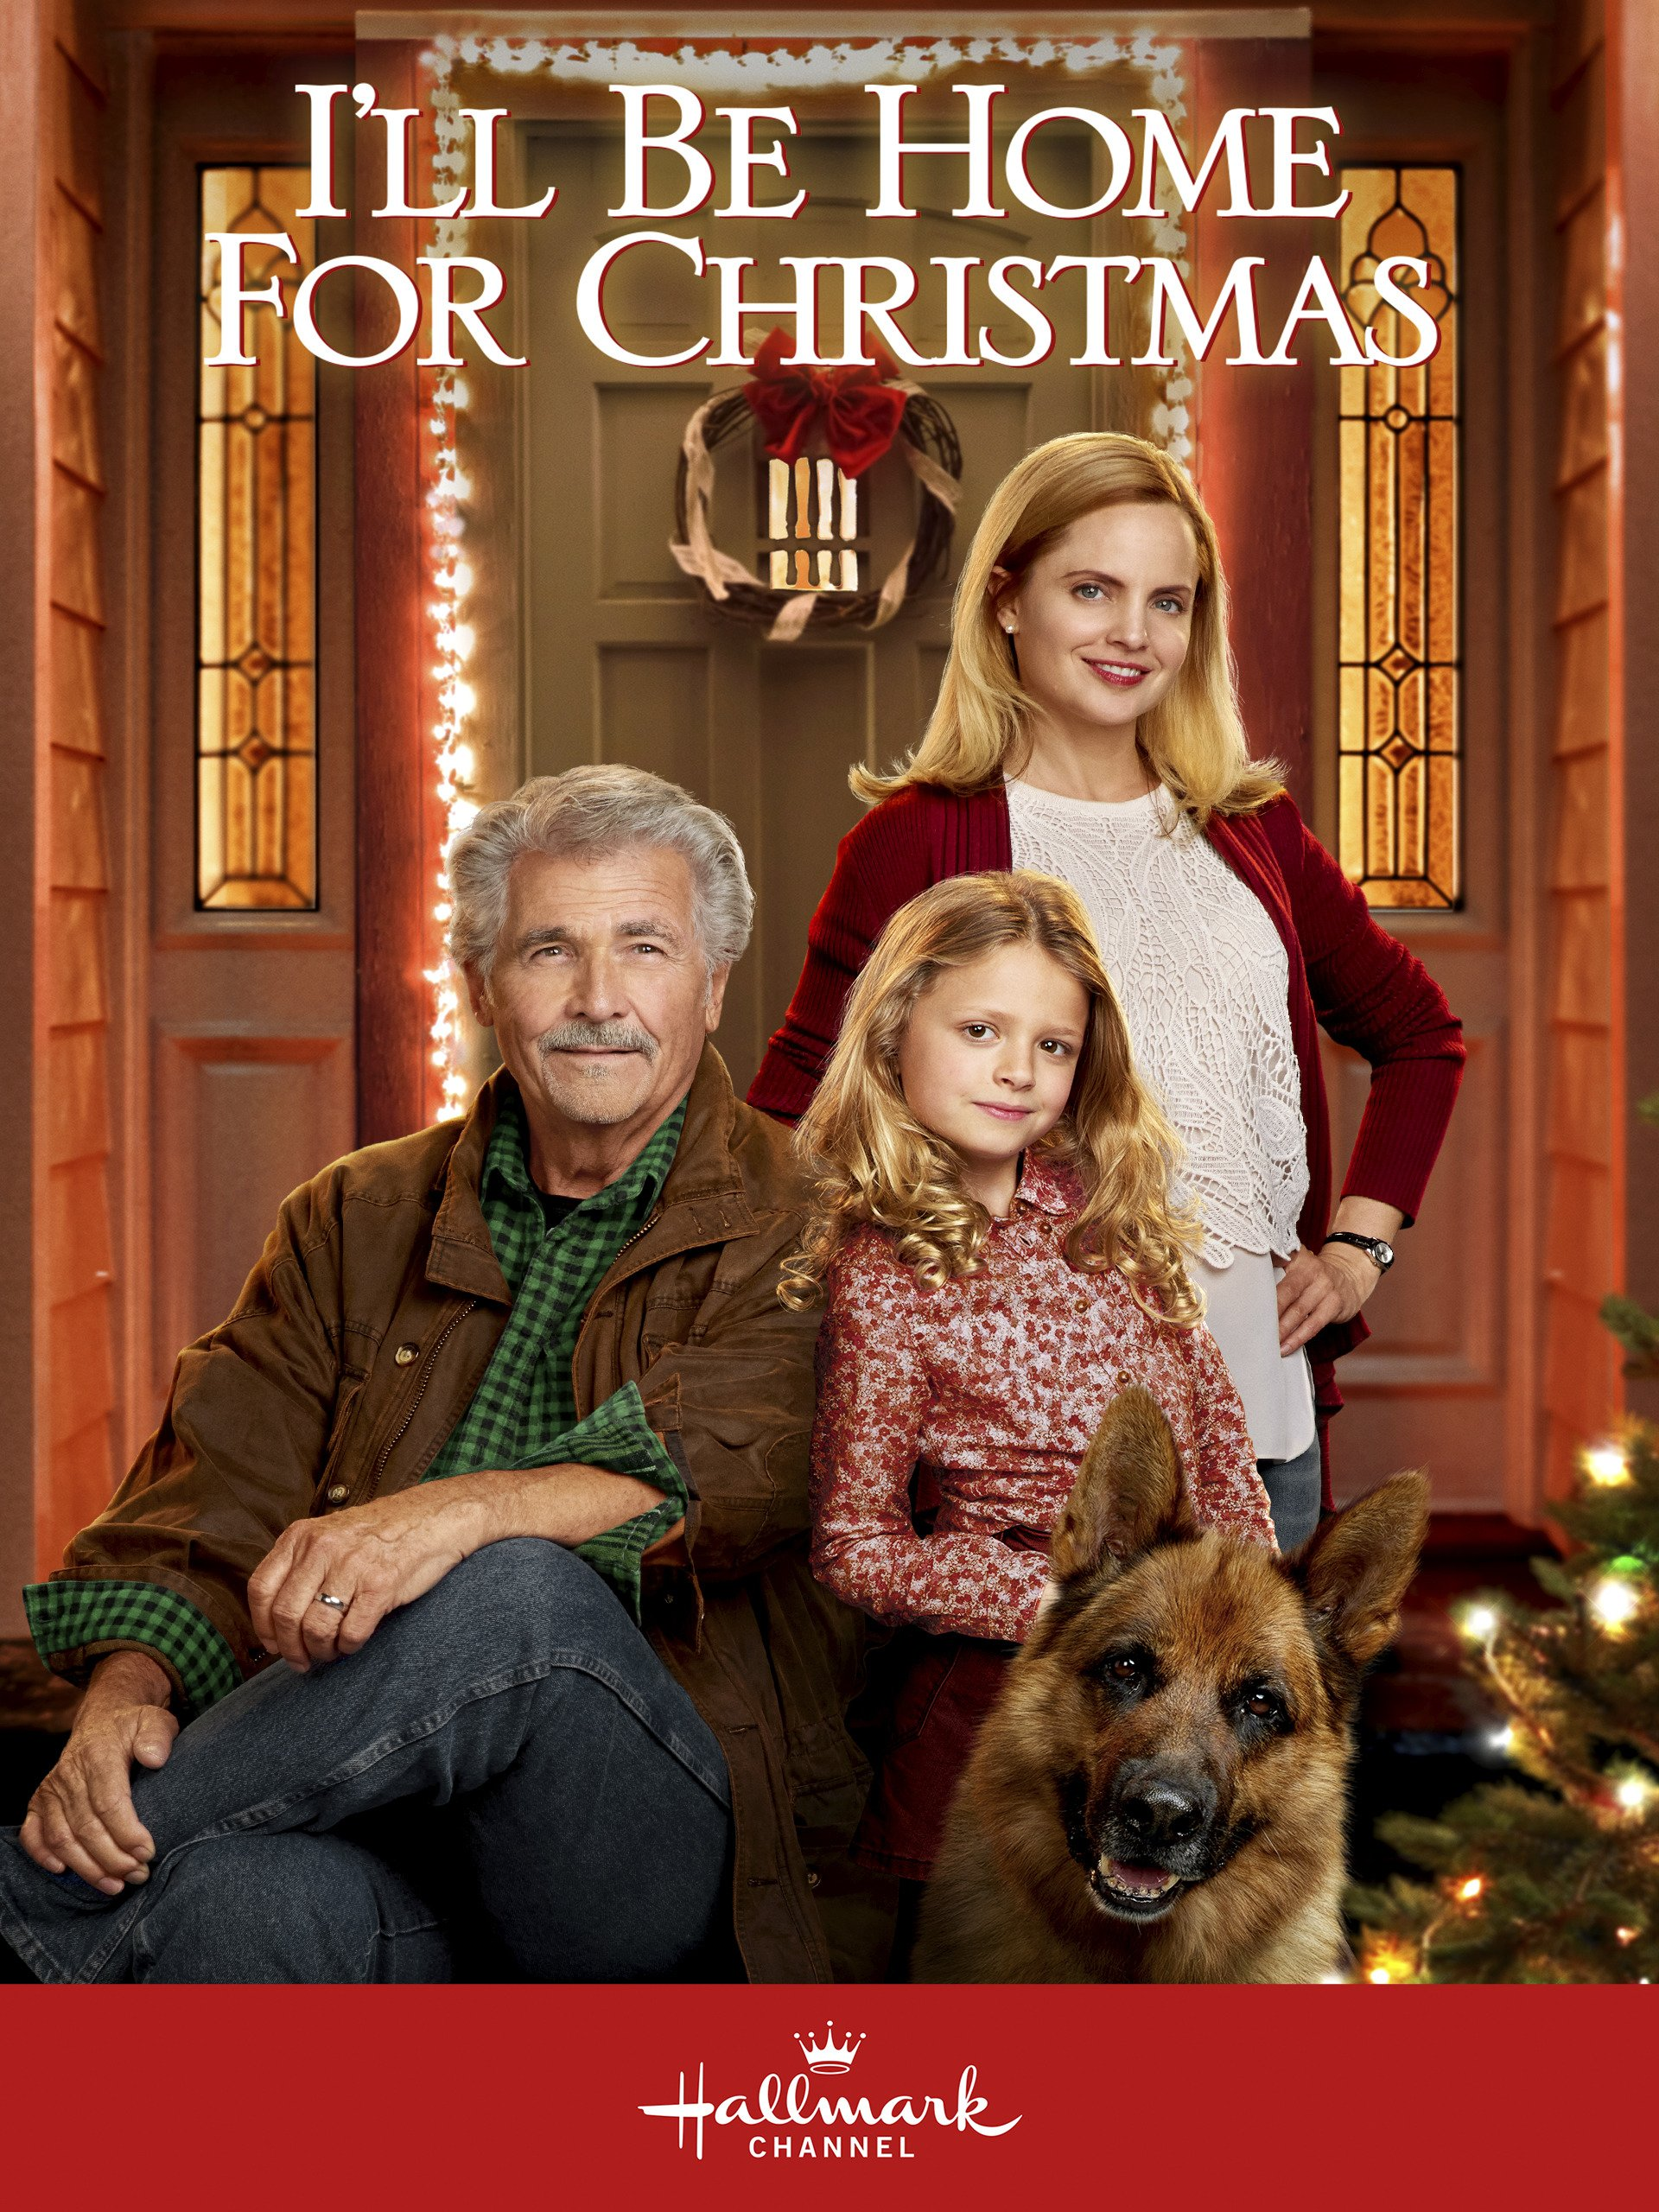 Amazon.com: I\'ll Be Home for Christmas: James Brolin, Mena Suvari ...